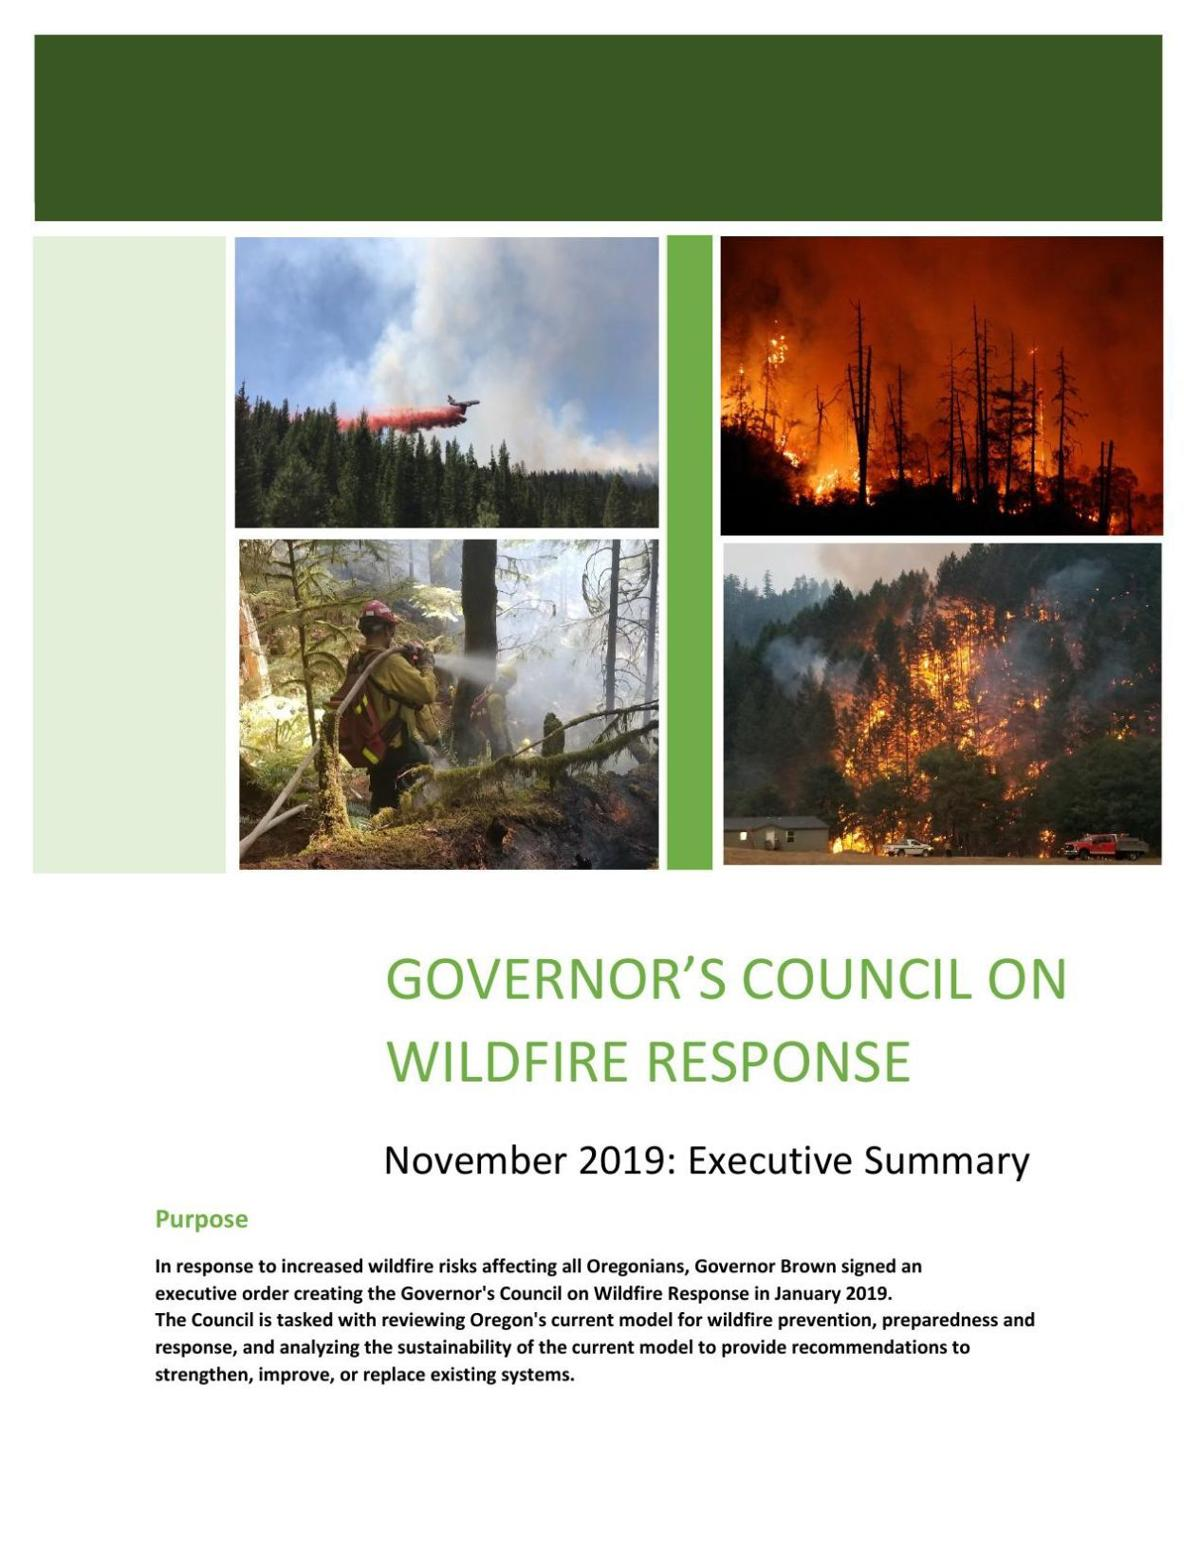 Council on Wildfire Response Executive Summary